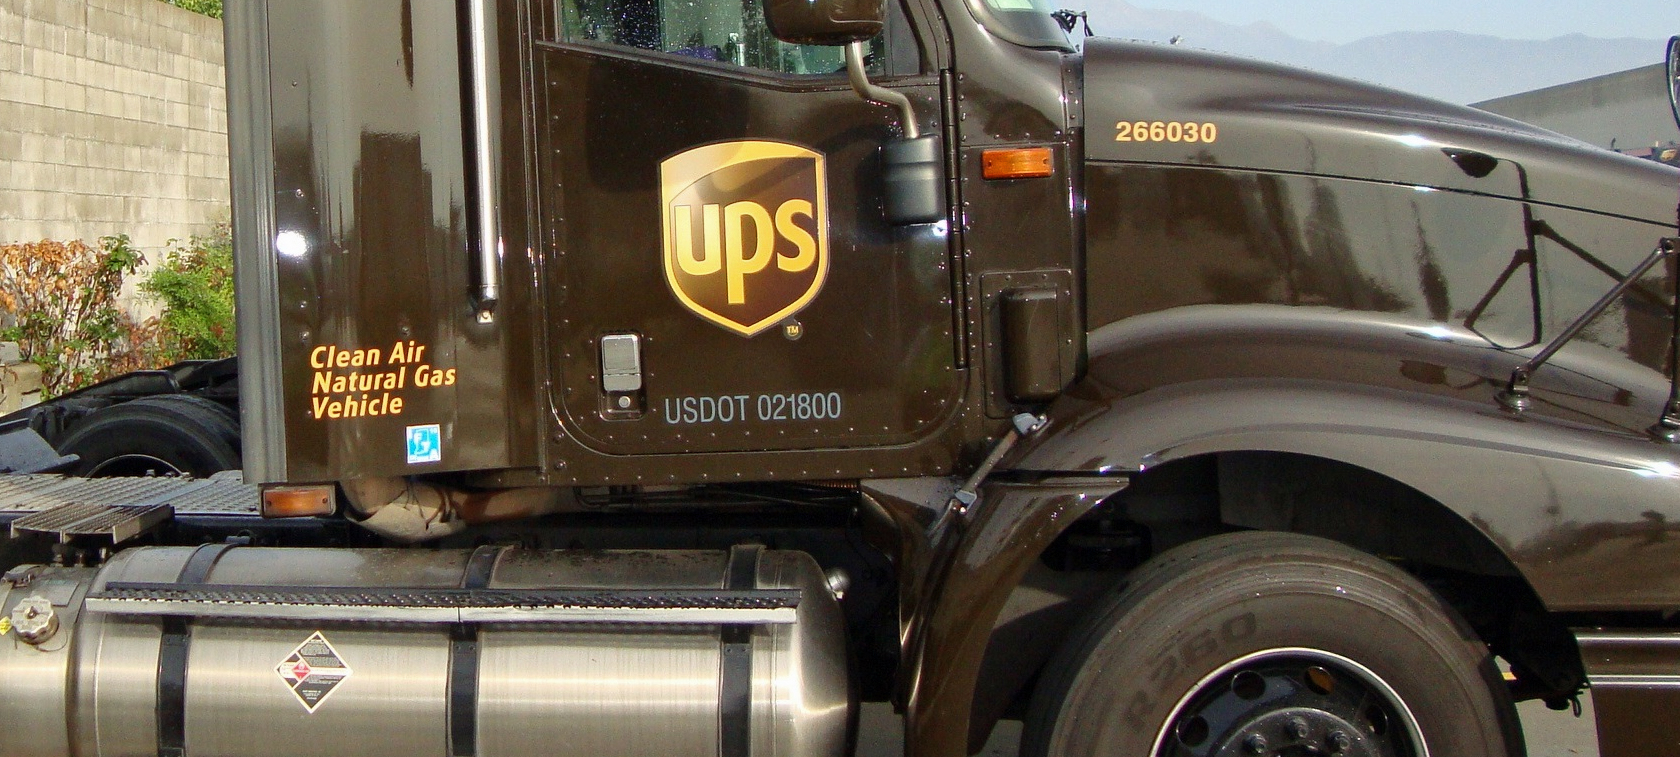 UPS supports alternative fuels